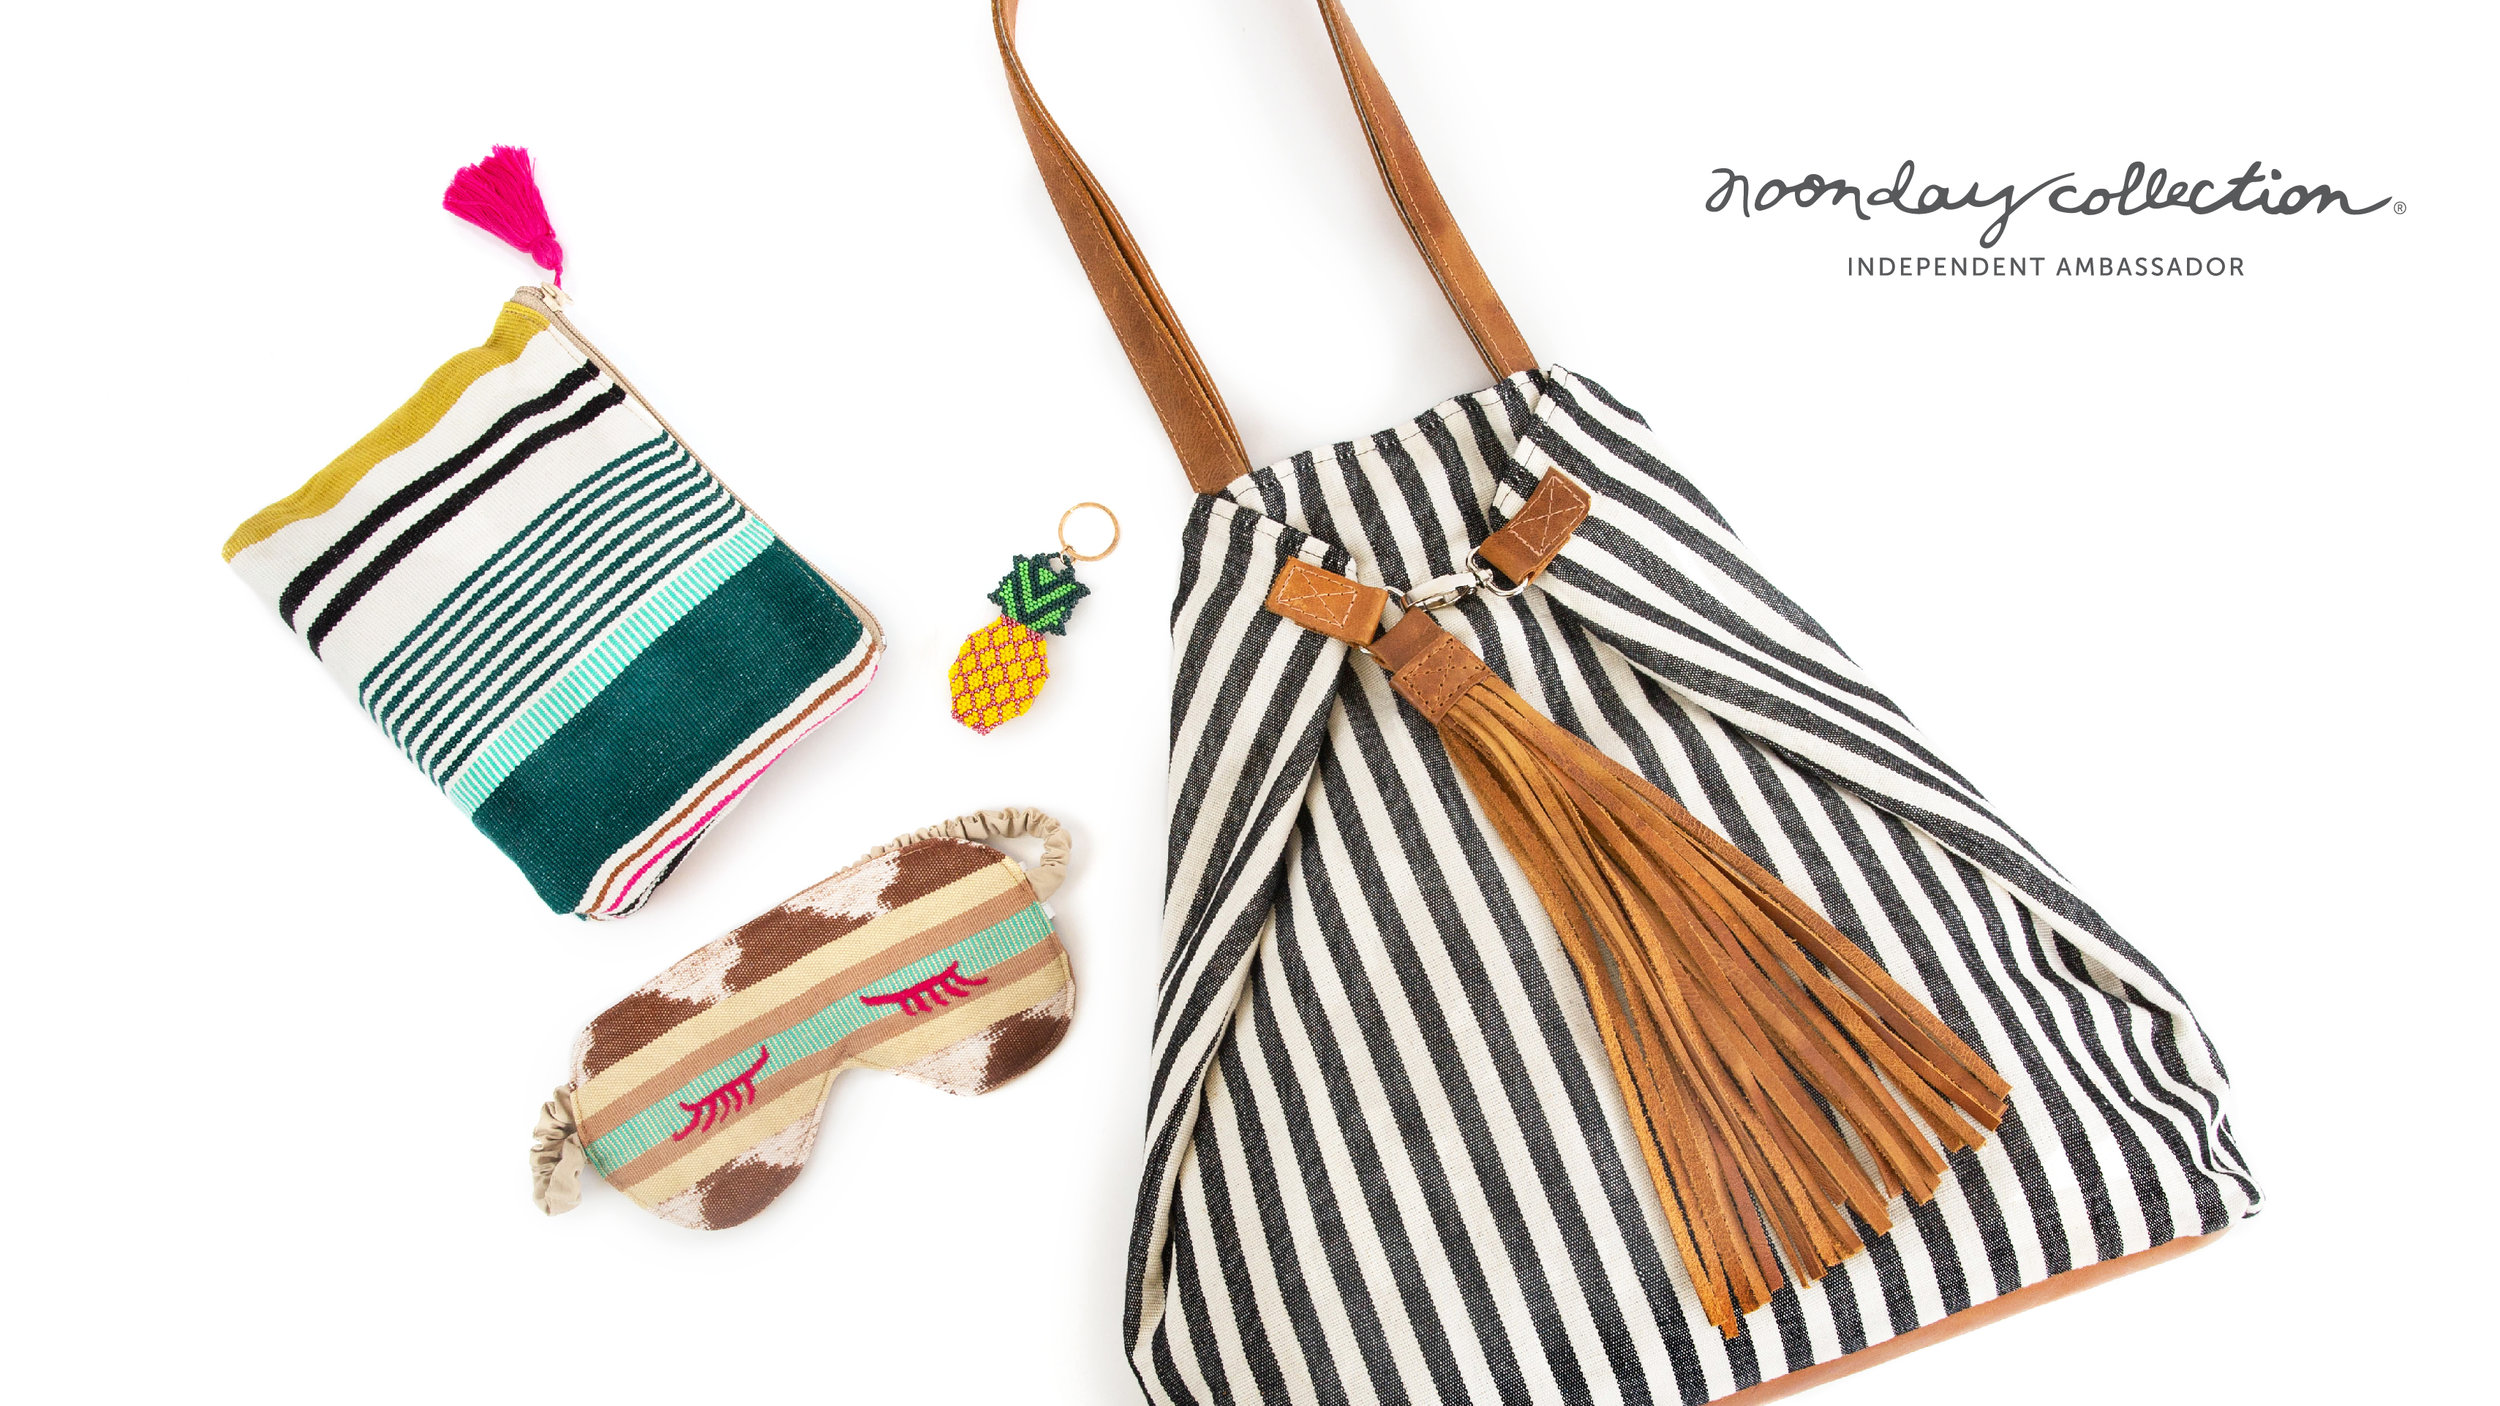 Noonday Collection's summer travel capsule - fair trade style made with love